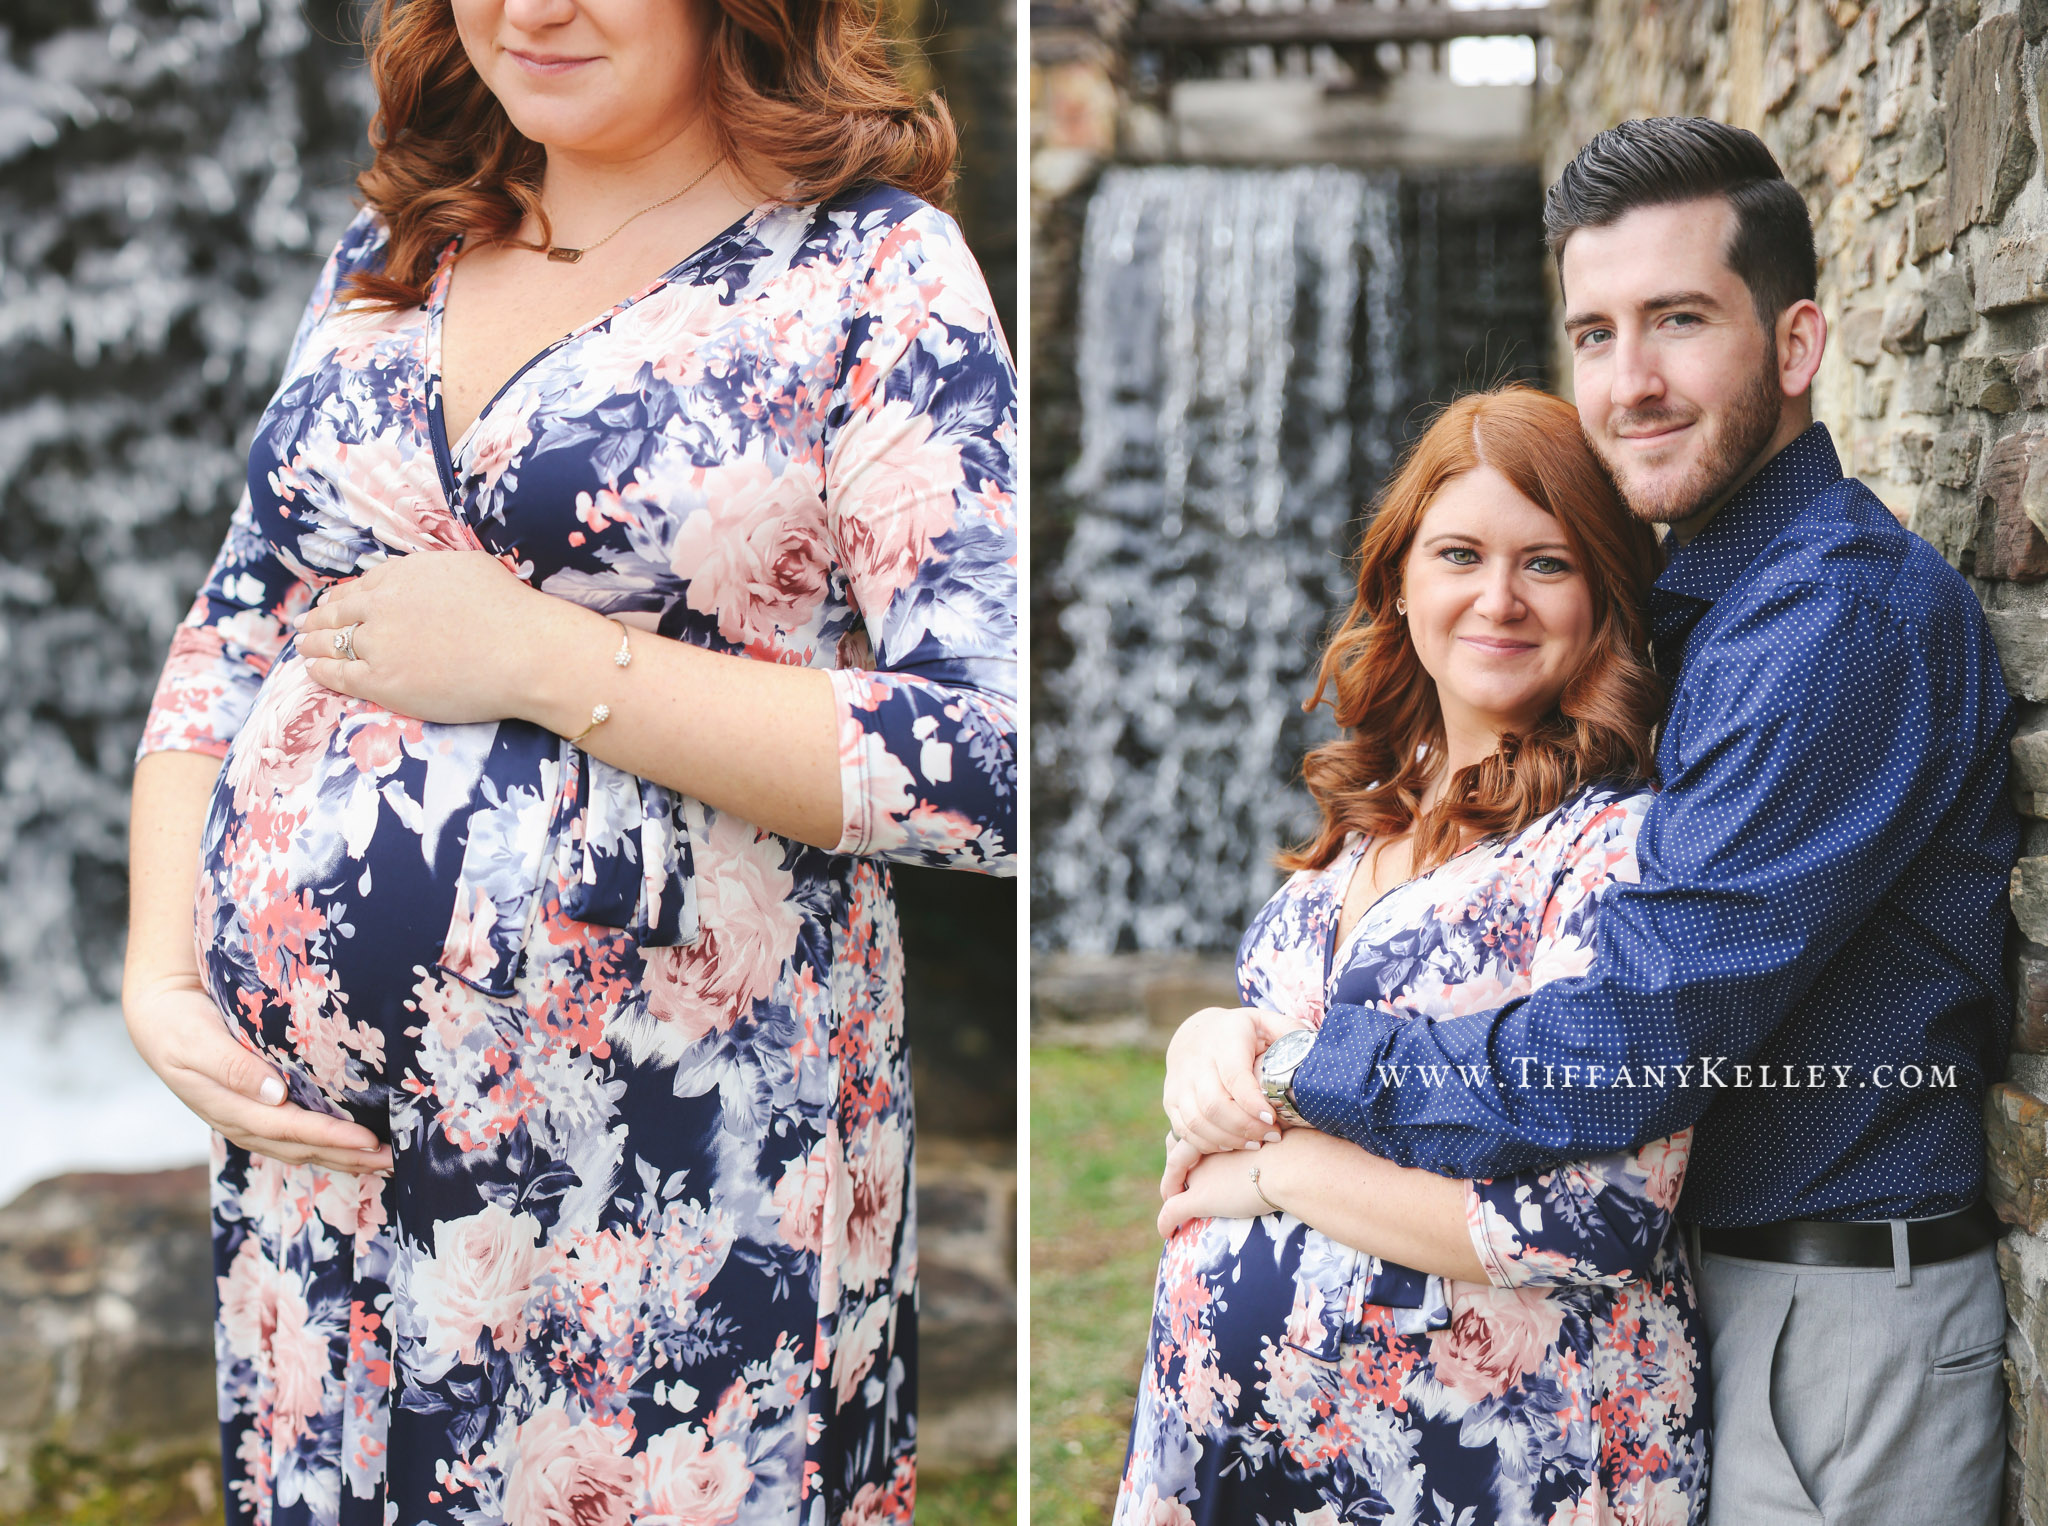 Waterstradt Maternity Branson Springfield MO Newborn Photographer - Tiffany Kelley Photography